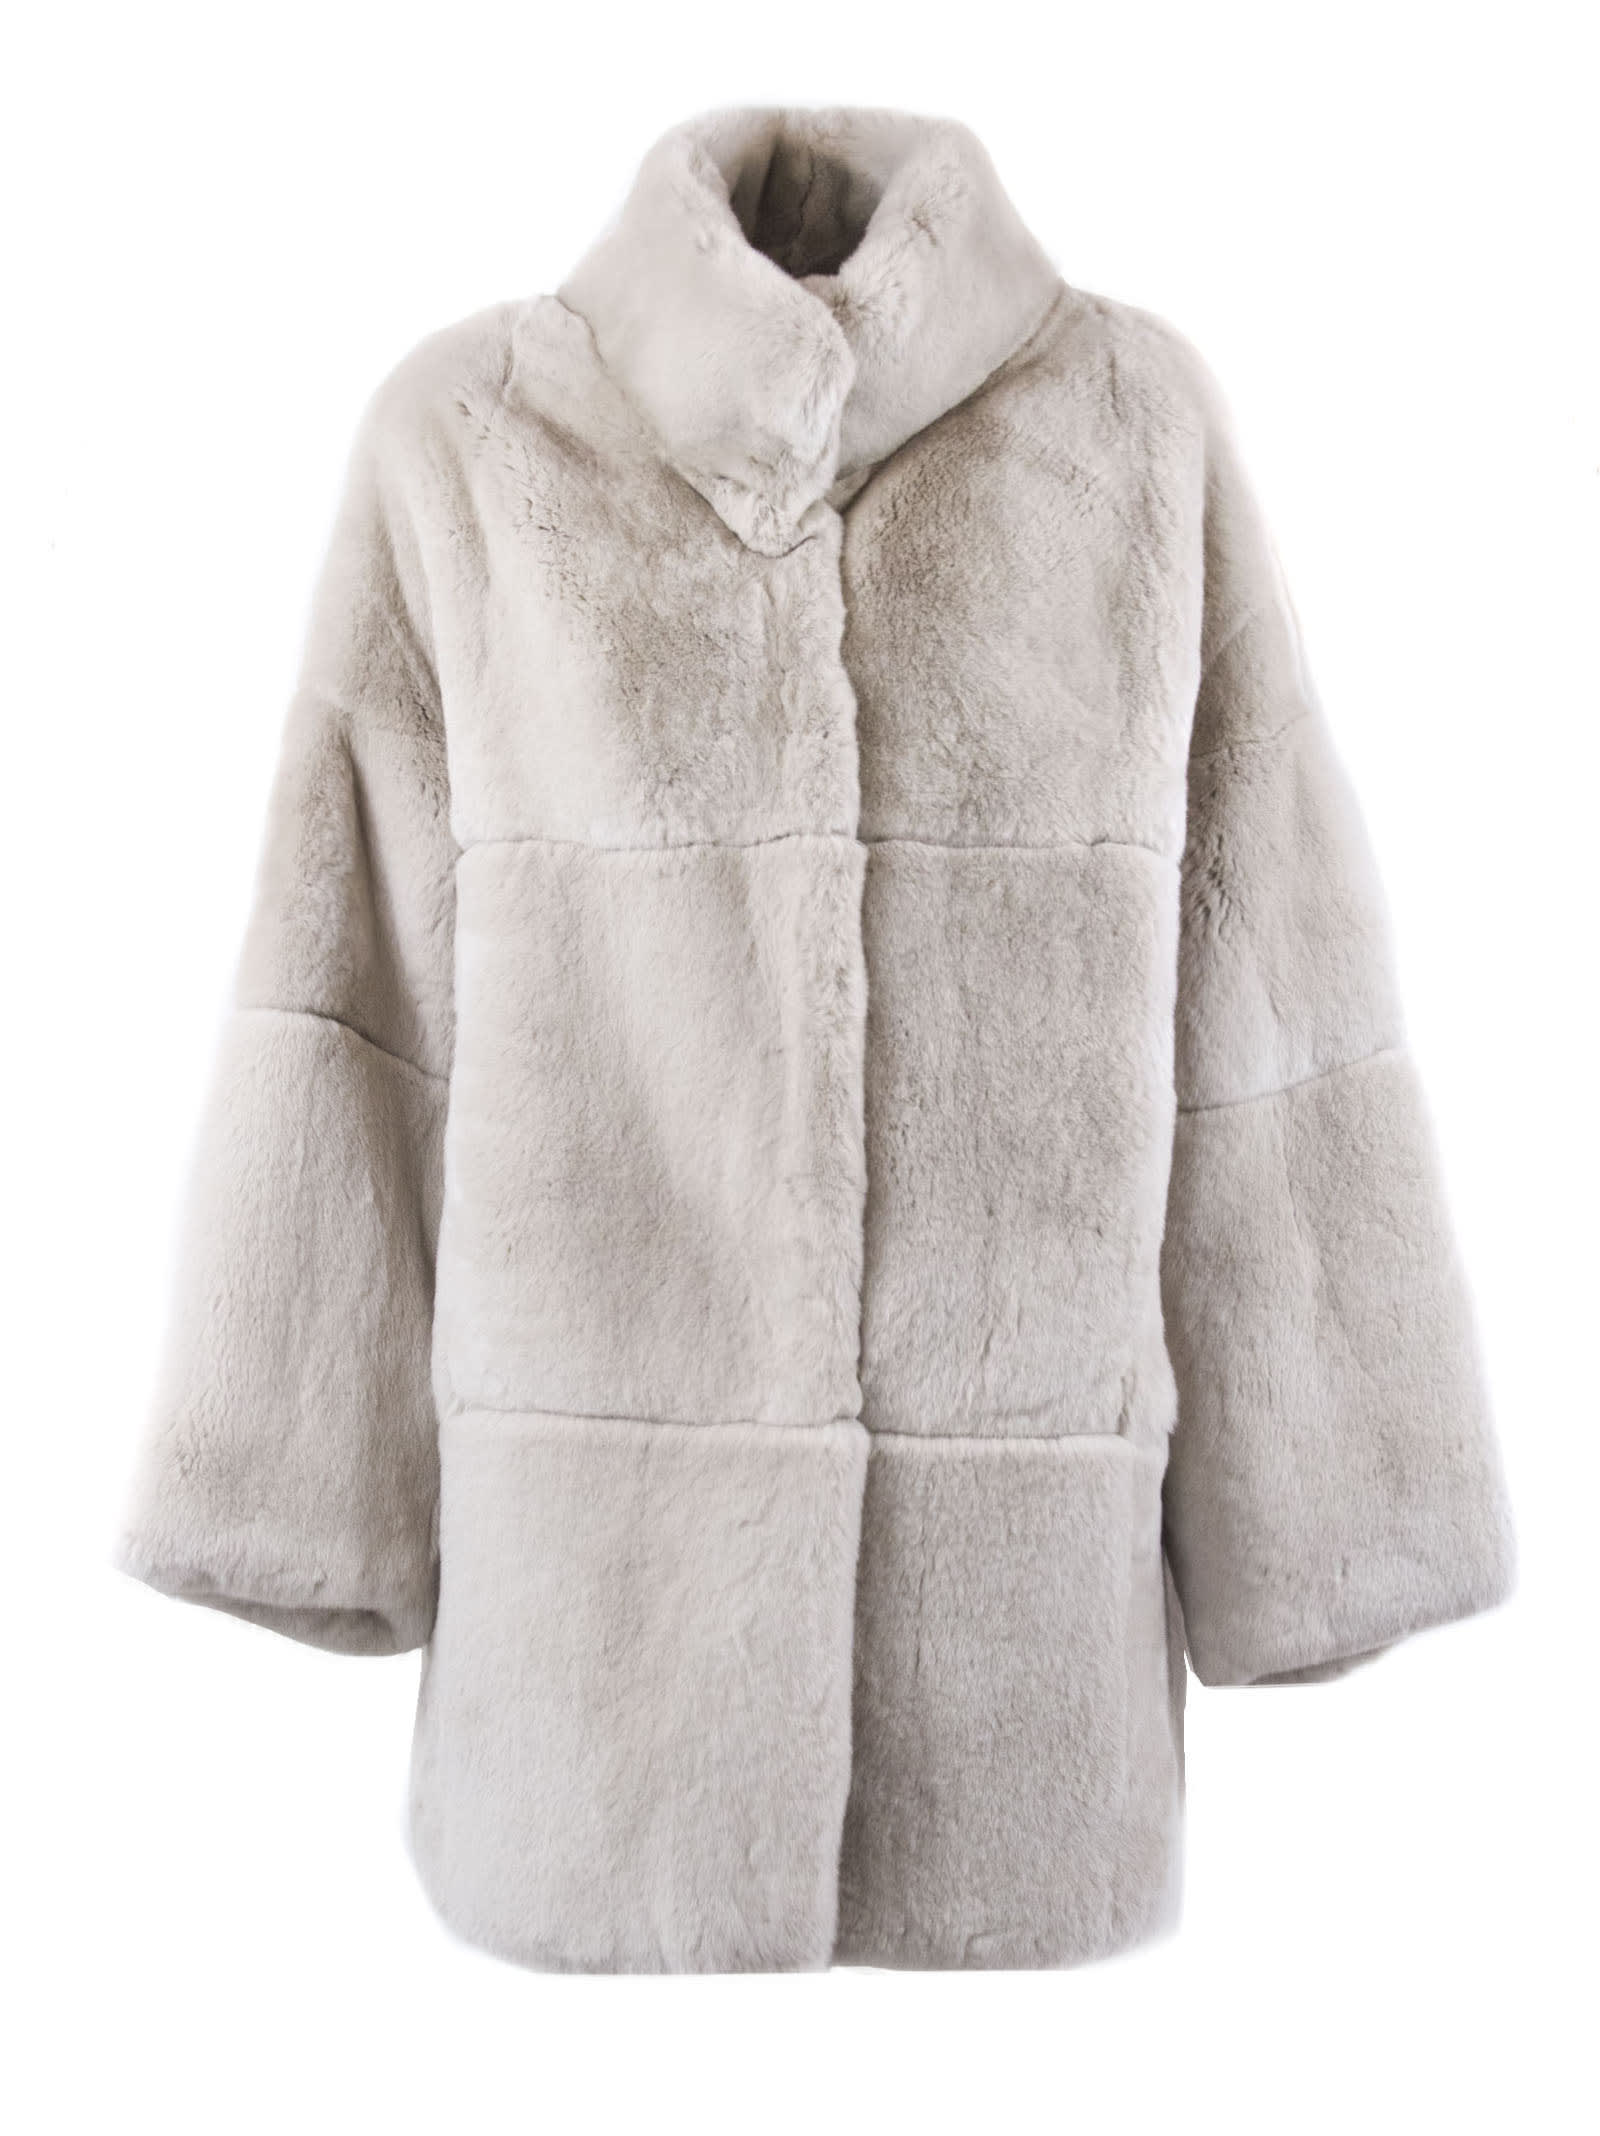 Photo of  S.W.O.R.D 6.6.44 Pink Rabbit Fur Shearling Button-up Coat- shop S.W.O.R.D 6.6.44 jackets online sales